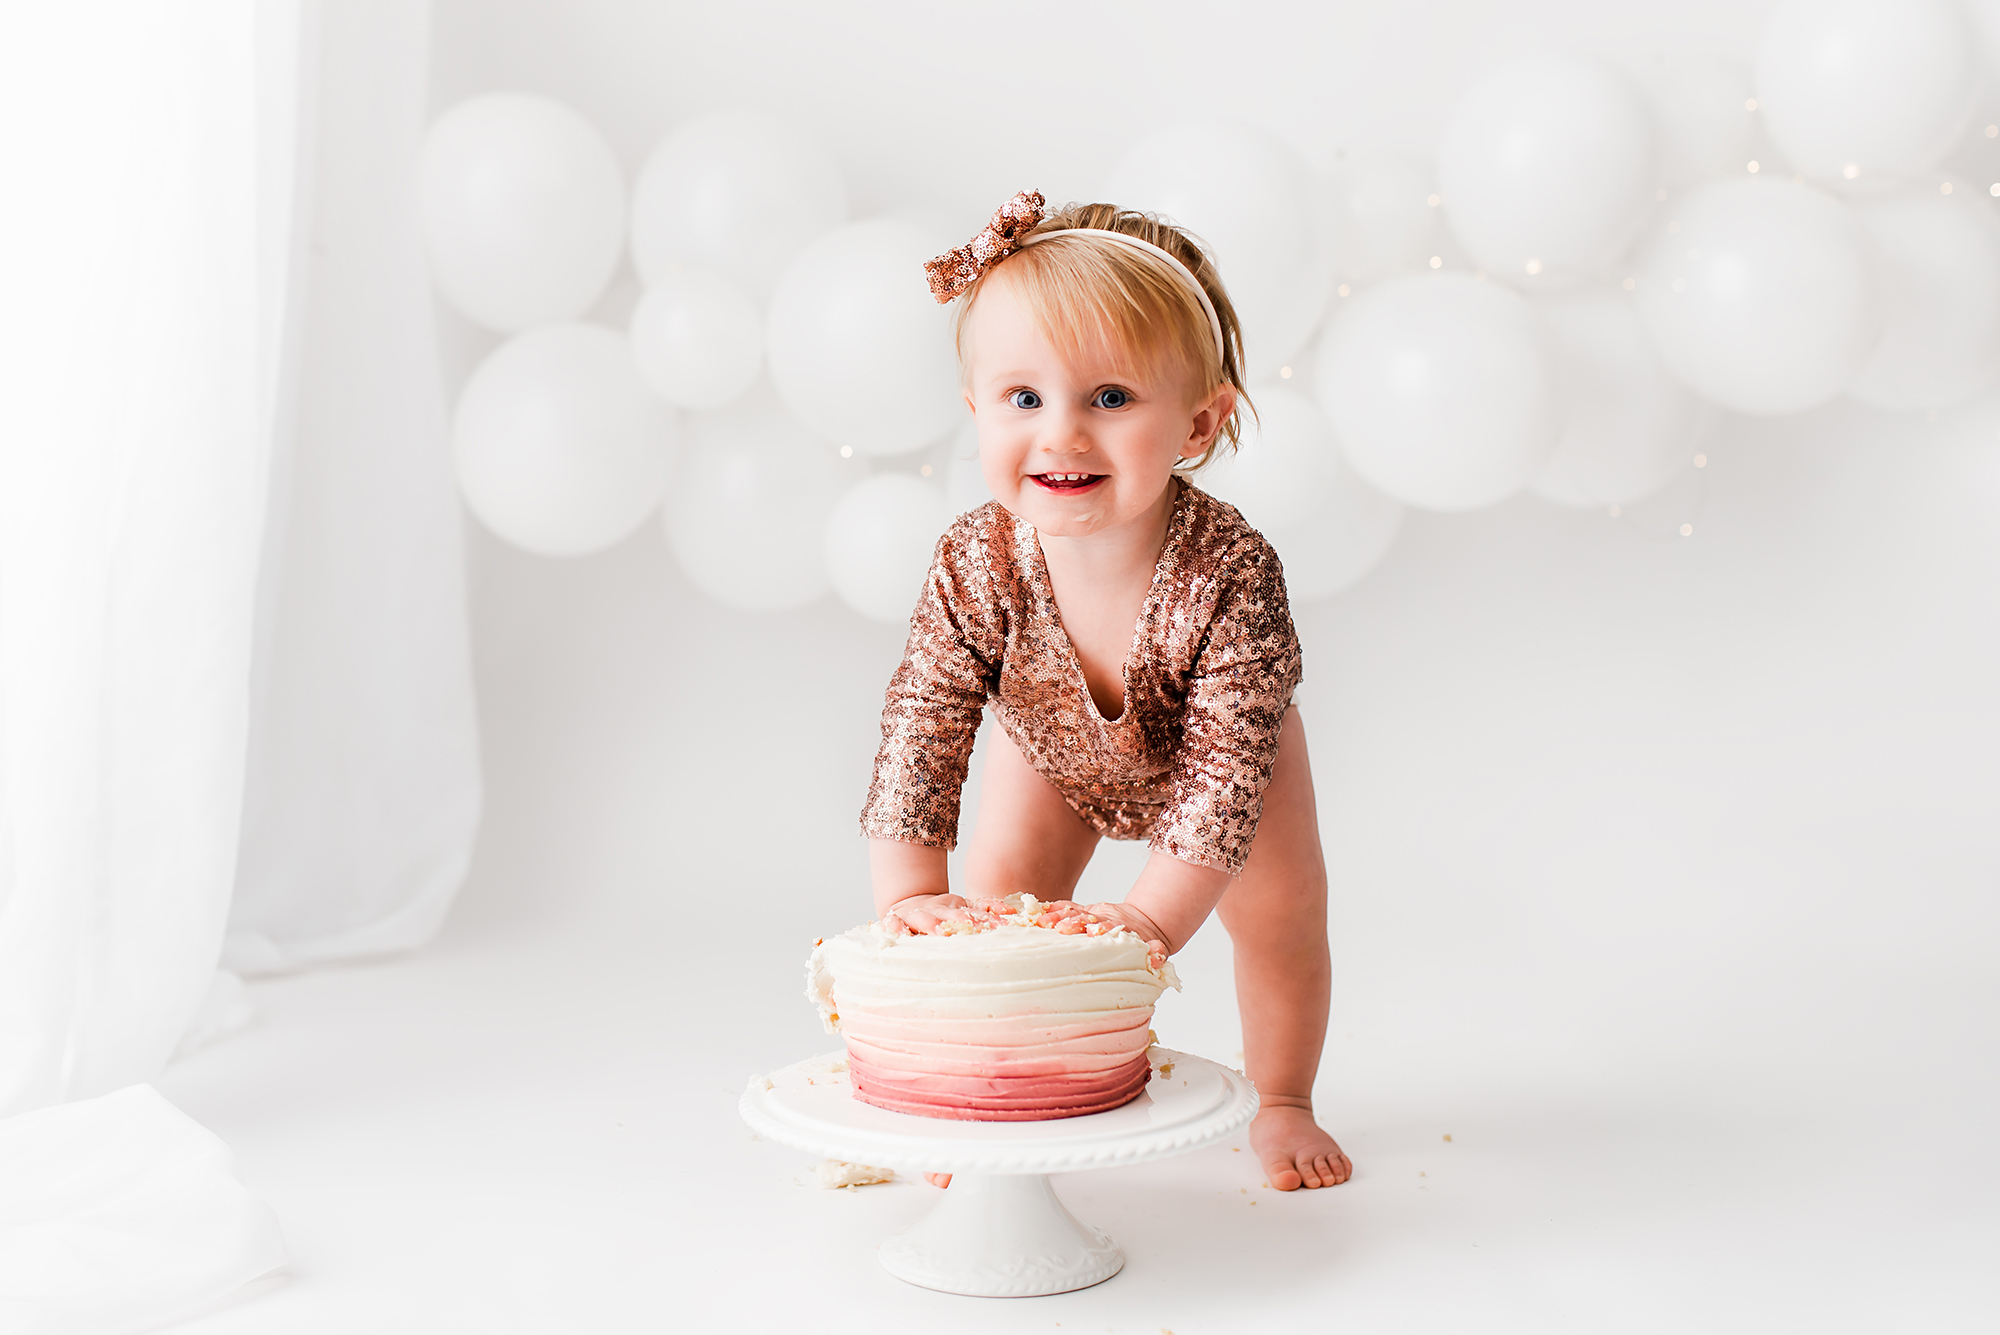 first birthday photo shoot, fun cake session